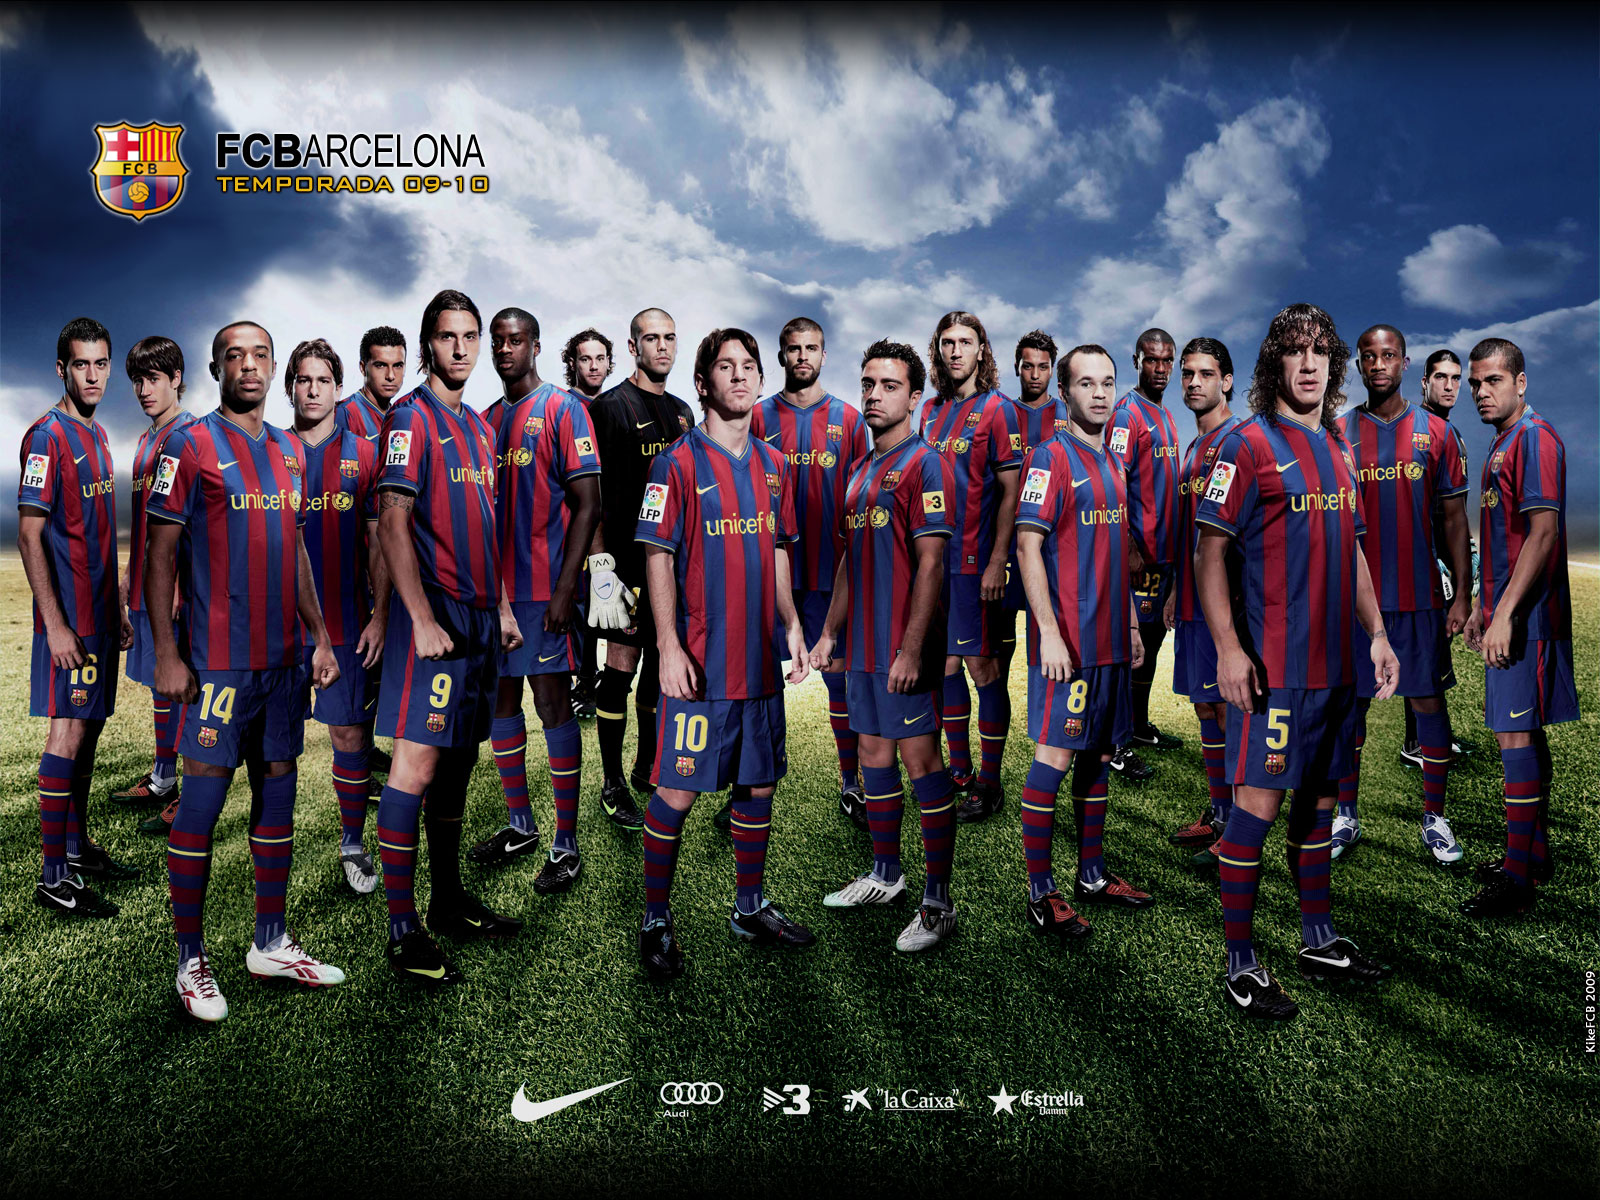 https://i2.wp.com/3.bp.blogspot.com/-79XQC9qCjro/TcRDDAZ3FwI/AAAAAAAACmM/1bpnsUI43_c/s1600/FC+Barcelona+team+Wallpapers+%25285%2529.jpg